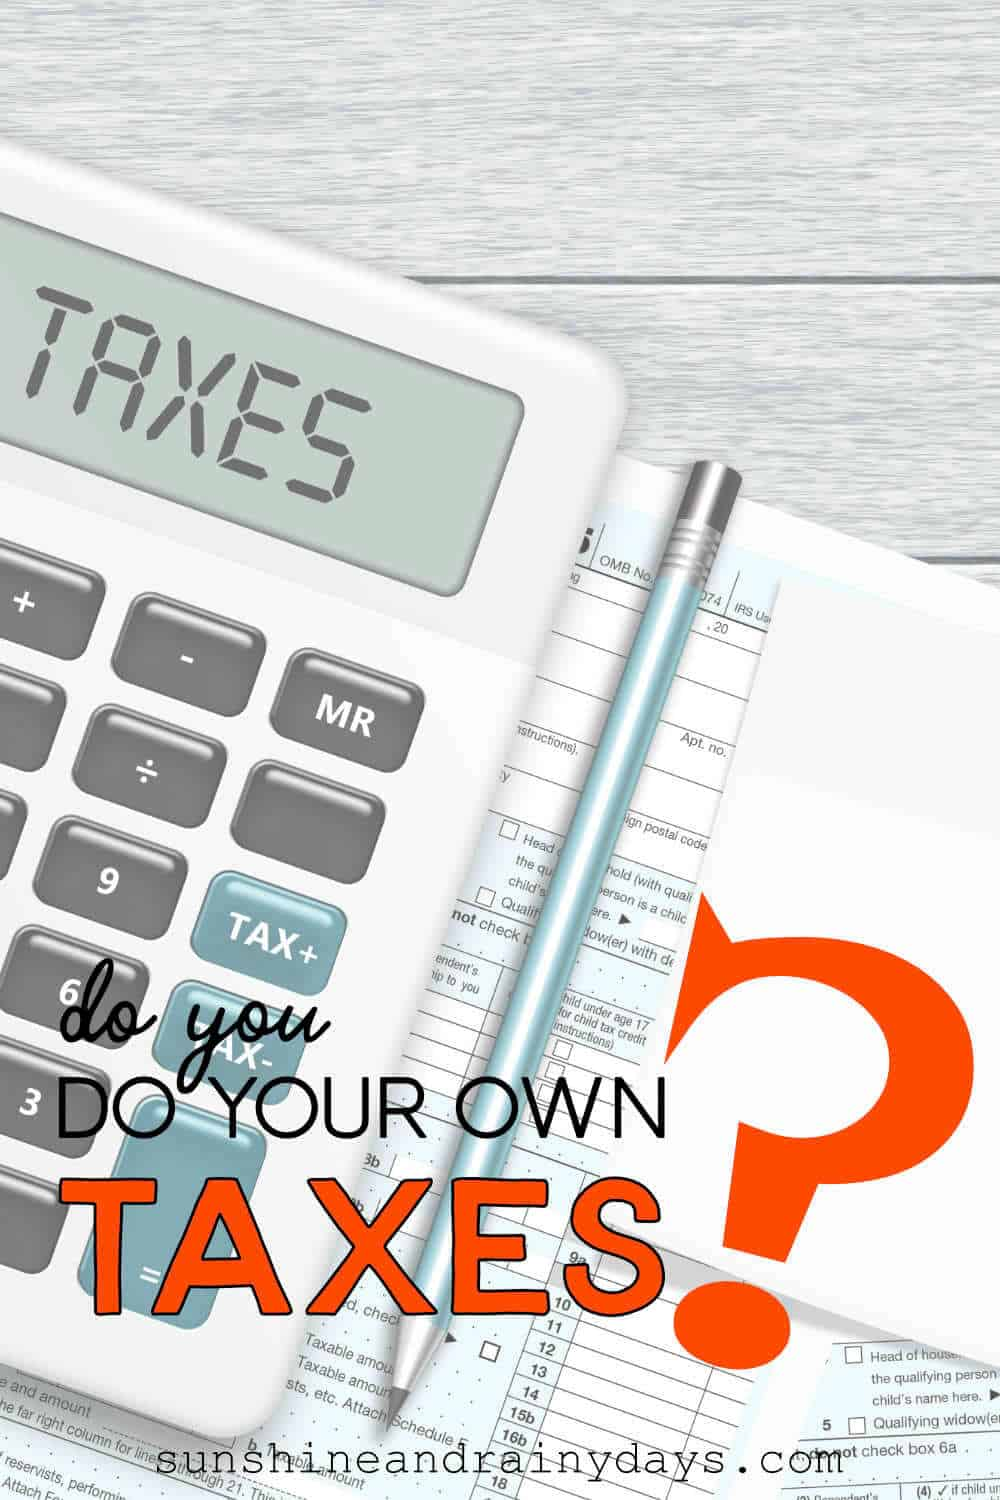 For many years we used a tax accountant to do our taxes. We would get our paperwork together, make an appointment, and meet up at the accountant's office. I never enjoyed paying  $300 to have our taxes done and decided I could do it myself! After all, our taxes were pretty straight forward.